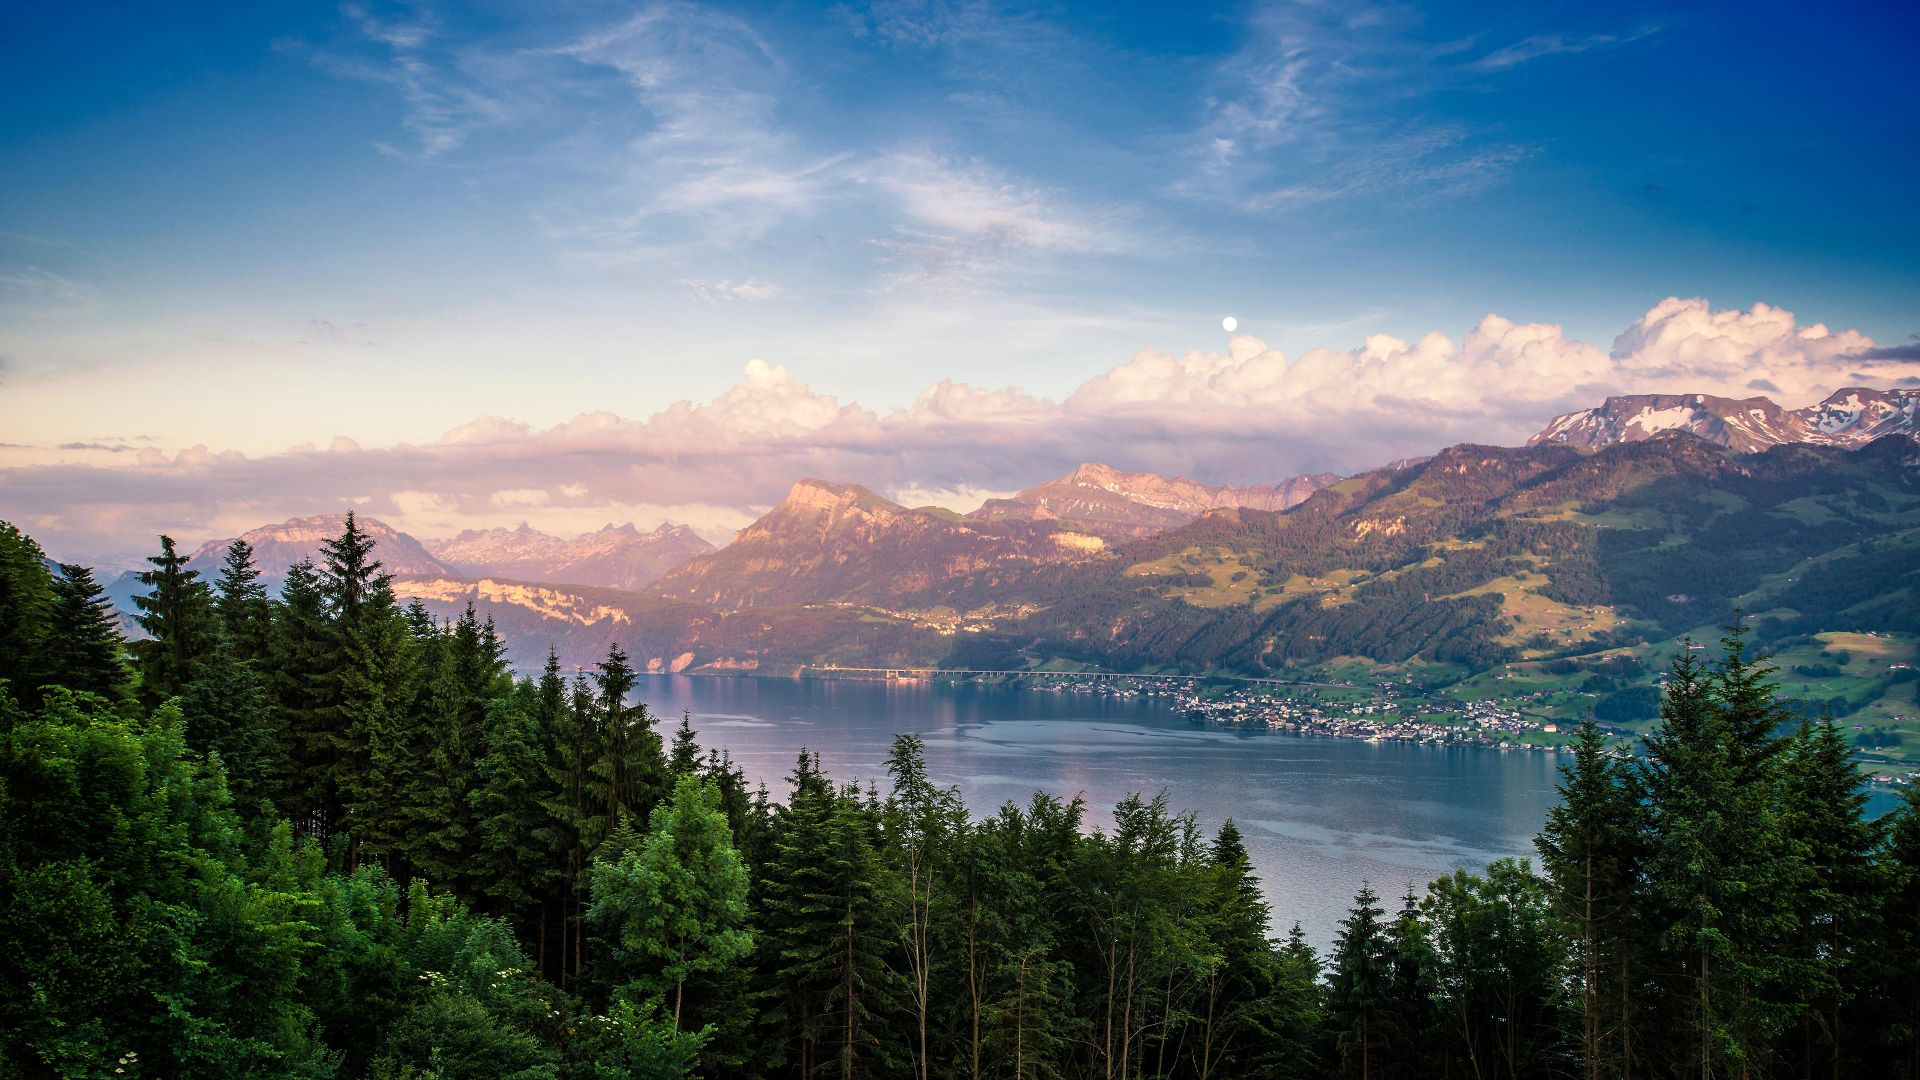 озеро, Lake Zurich, forest, sky, mountains, 4k (horizontal)